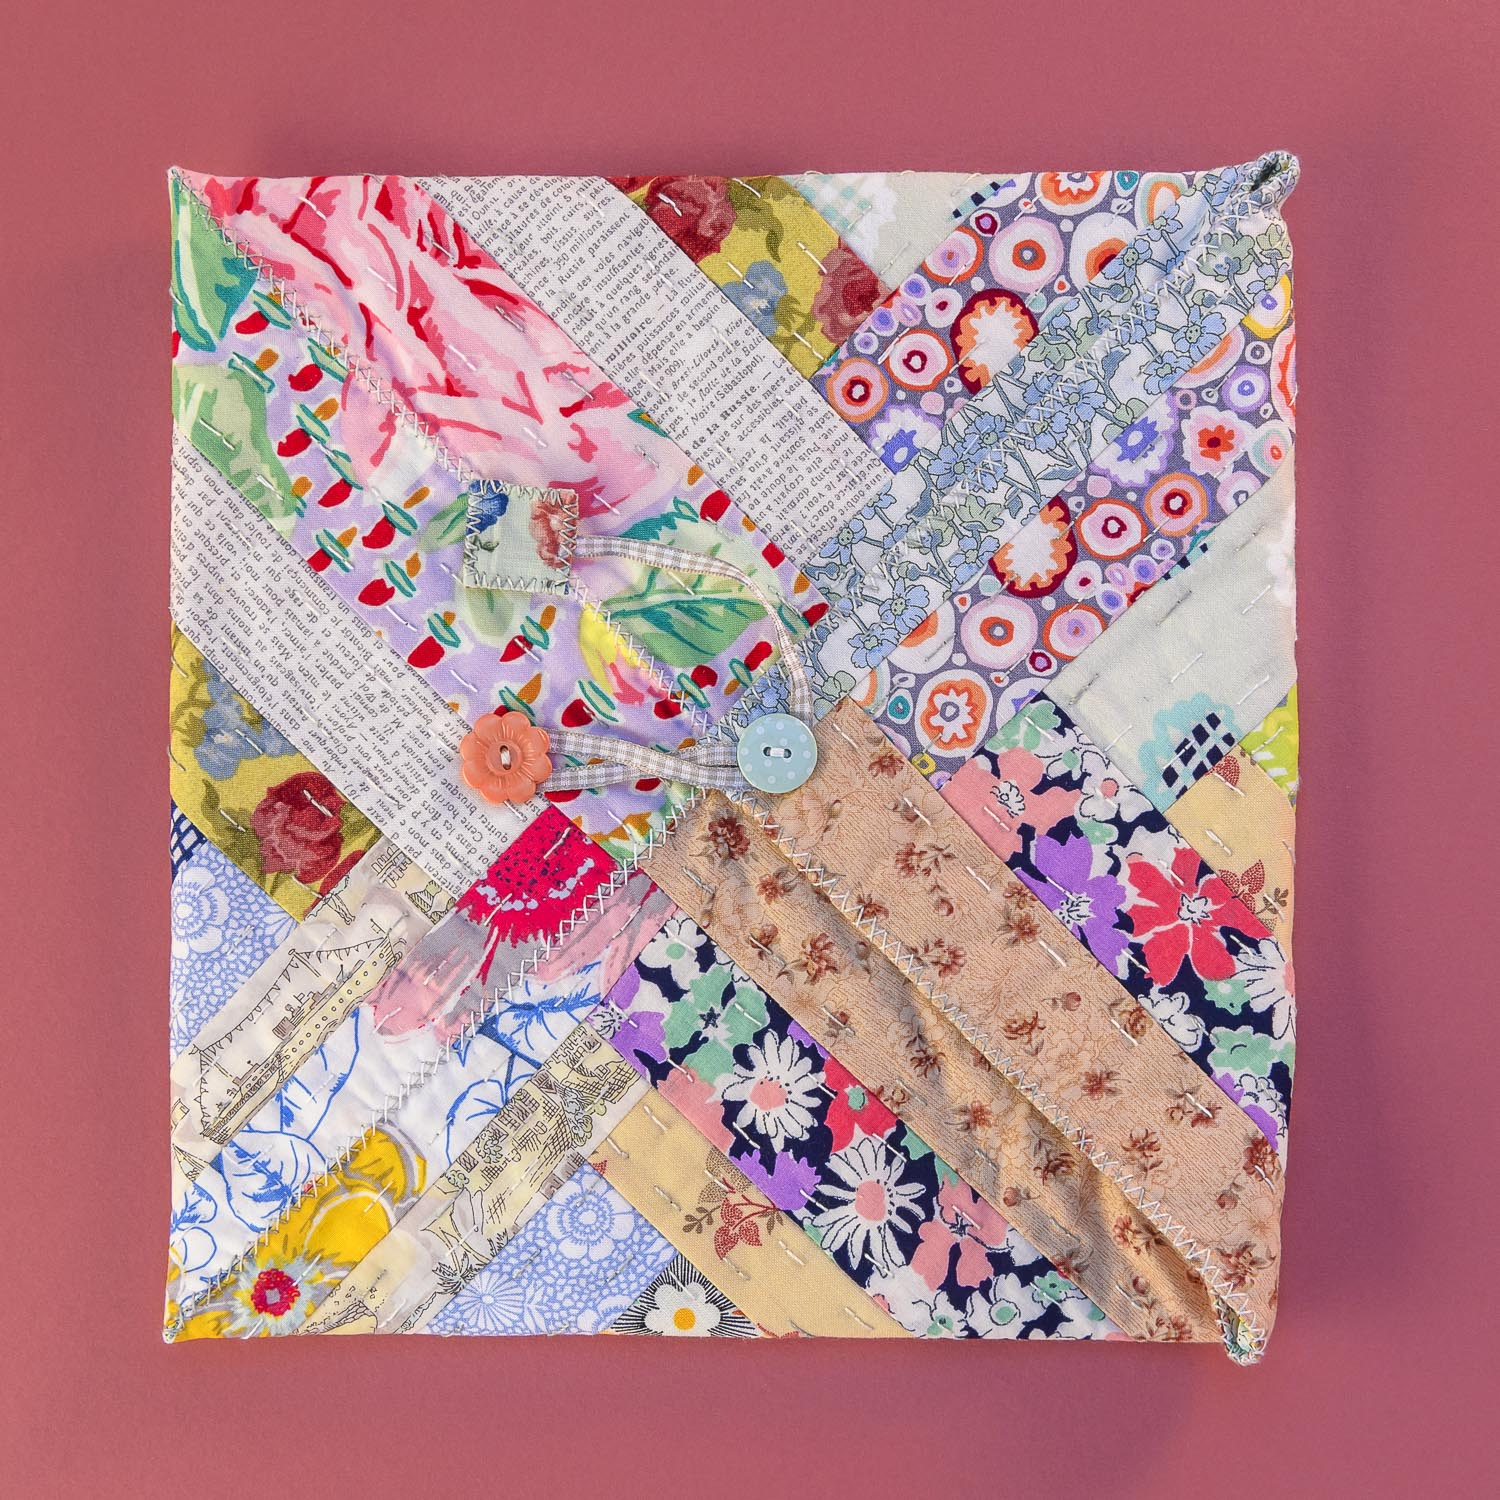 Quilted Patchworks by Carolyn Forster for Fox Chapel 210826wc853862